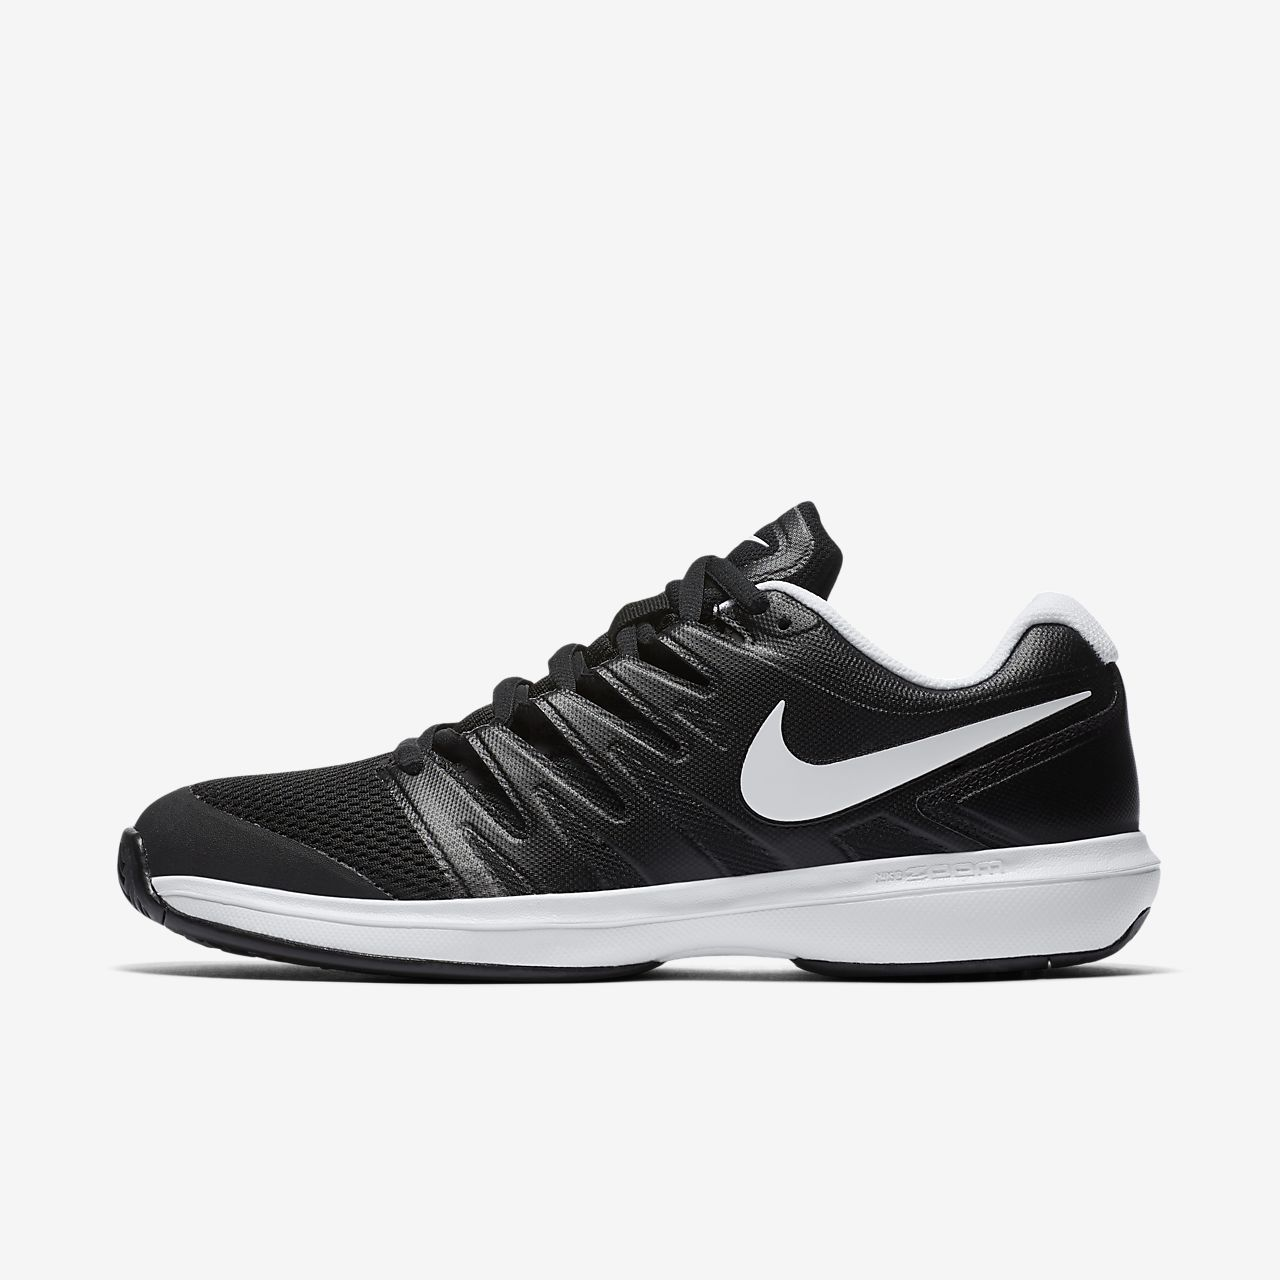 c03ccc32606 NikeCourt Air Zoom Prestige Men s Hard Court Tennis Shoe. Nike.com GB